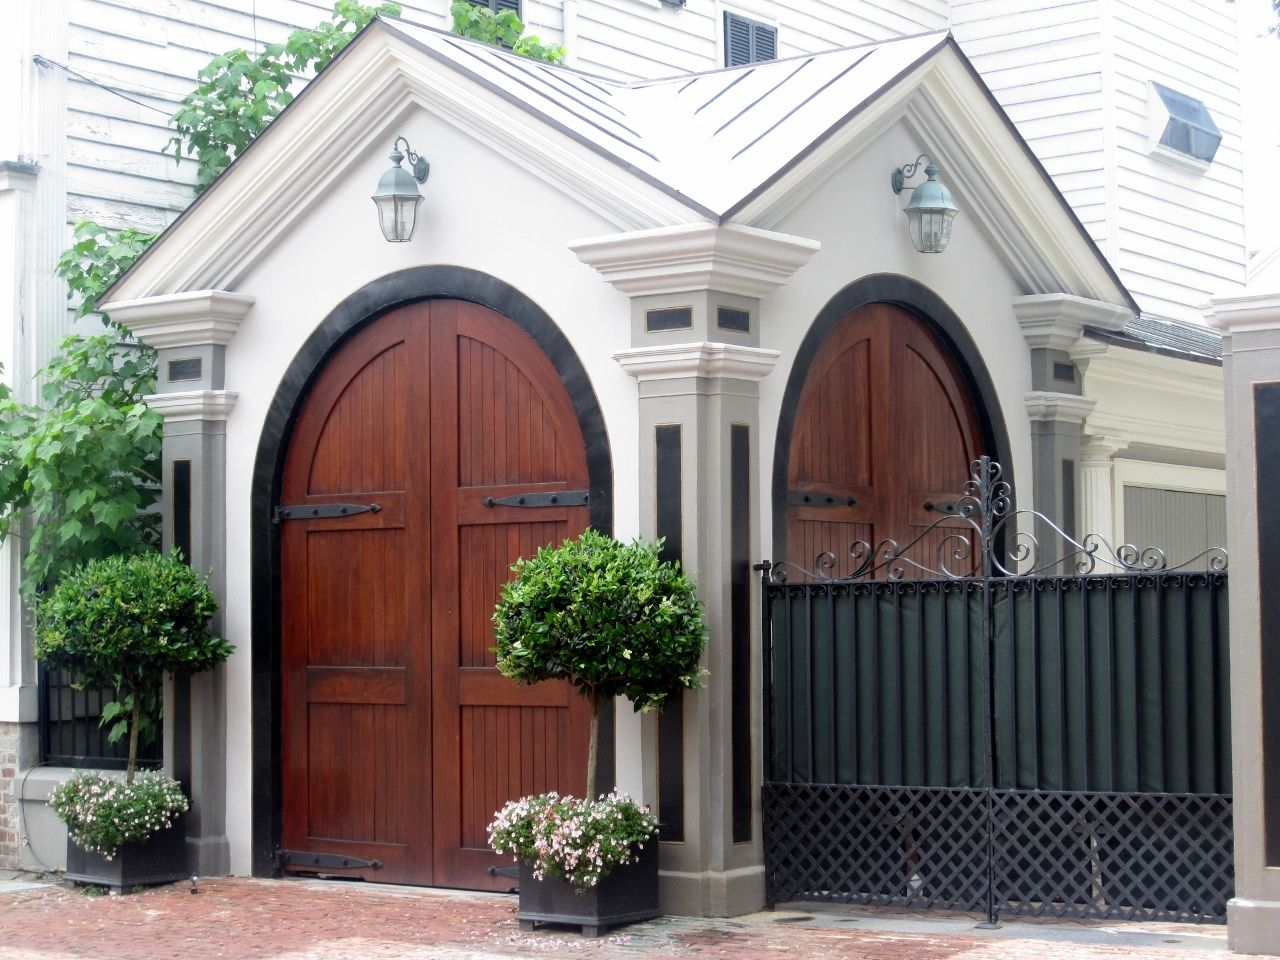 Gorgeous Garage Garage Door Design Architecture House Exterior